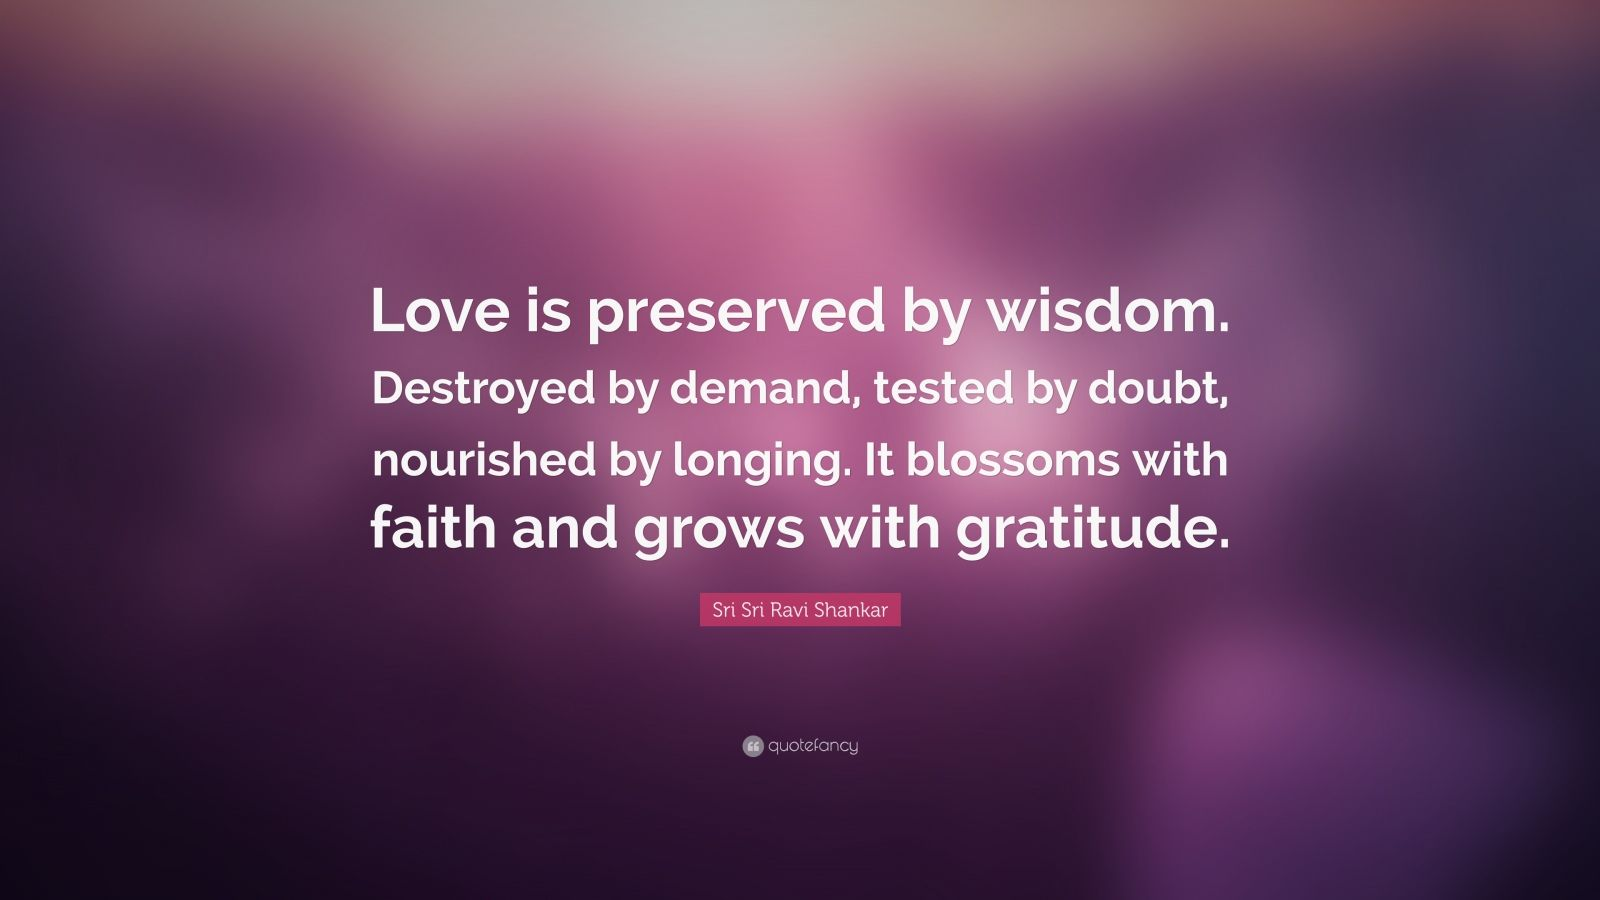 "Sri Sri Ravi Shankar Quote: ""Love is preserved by wisdom. Destroyed by demand, tested by doubt, nourished by longing. It blossoms with faith and grows with gratitude."""